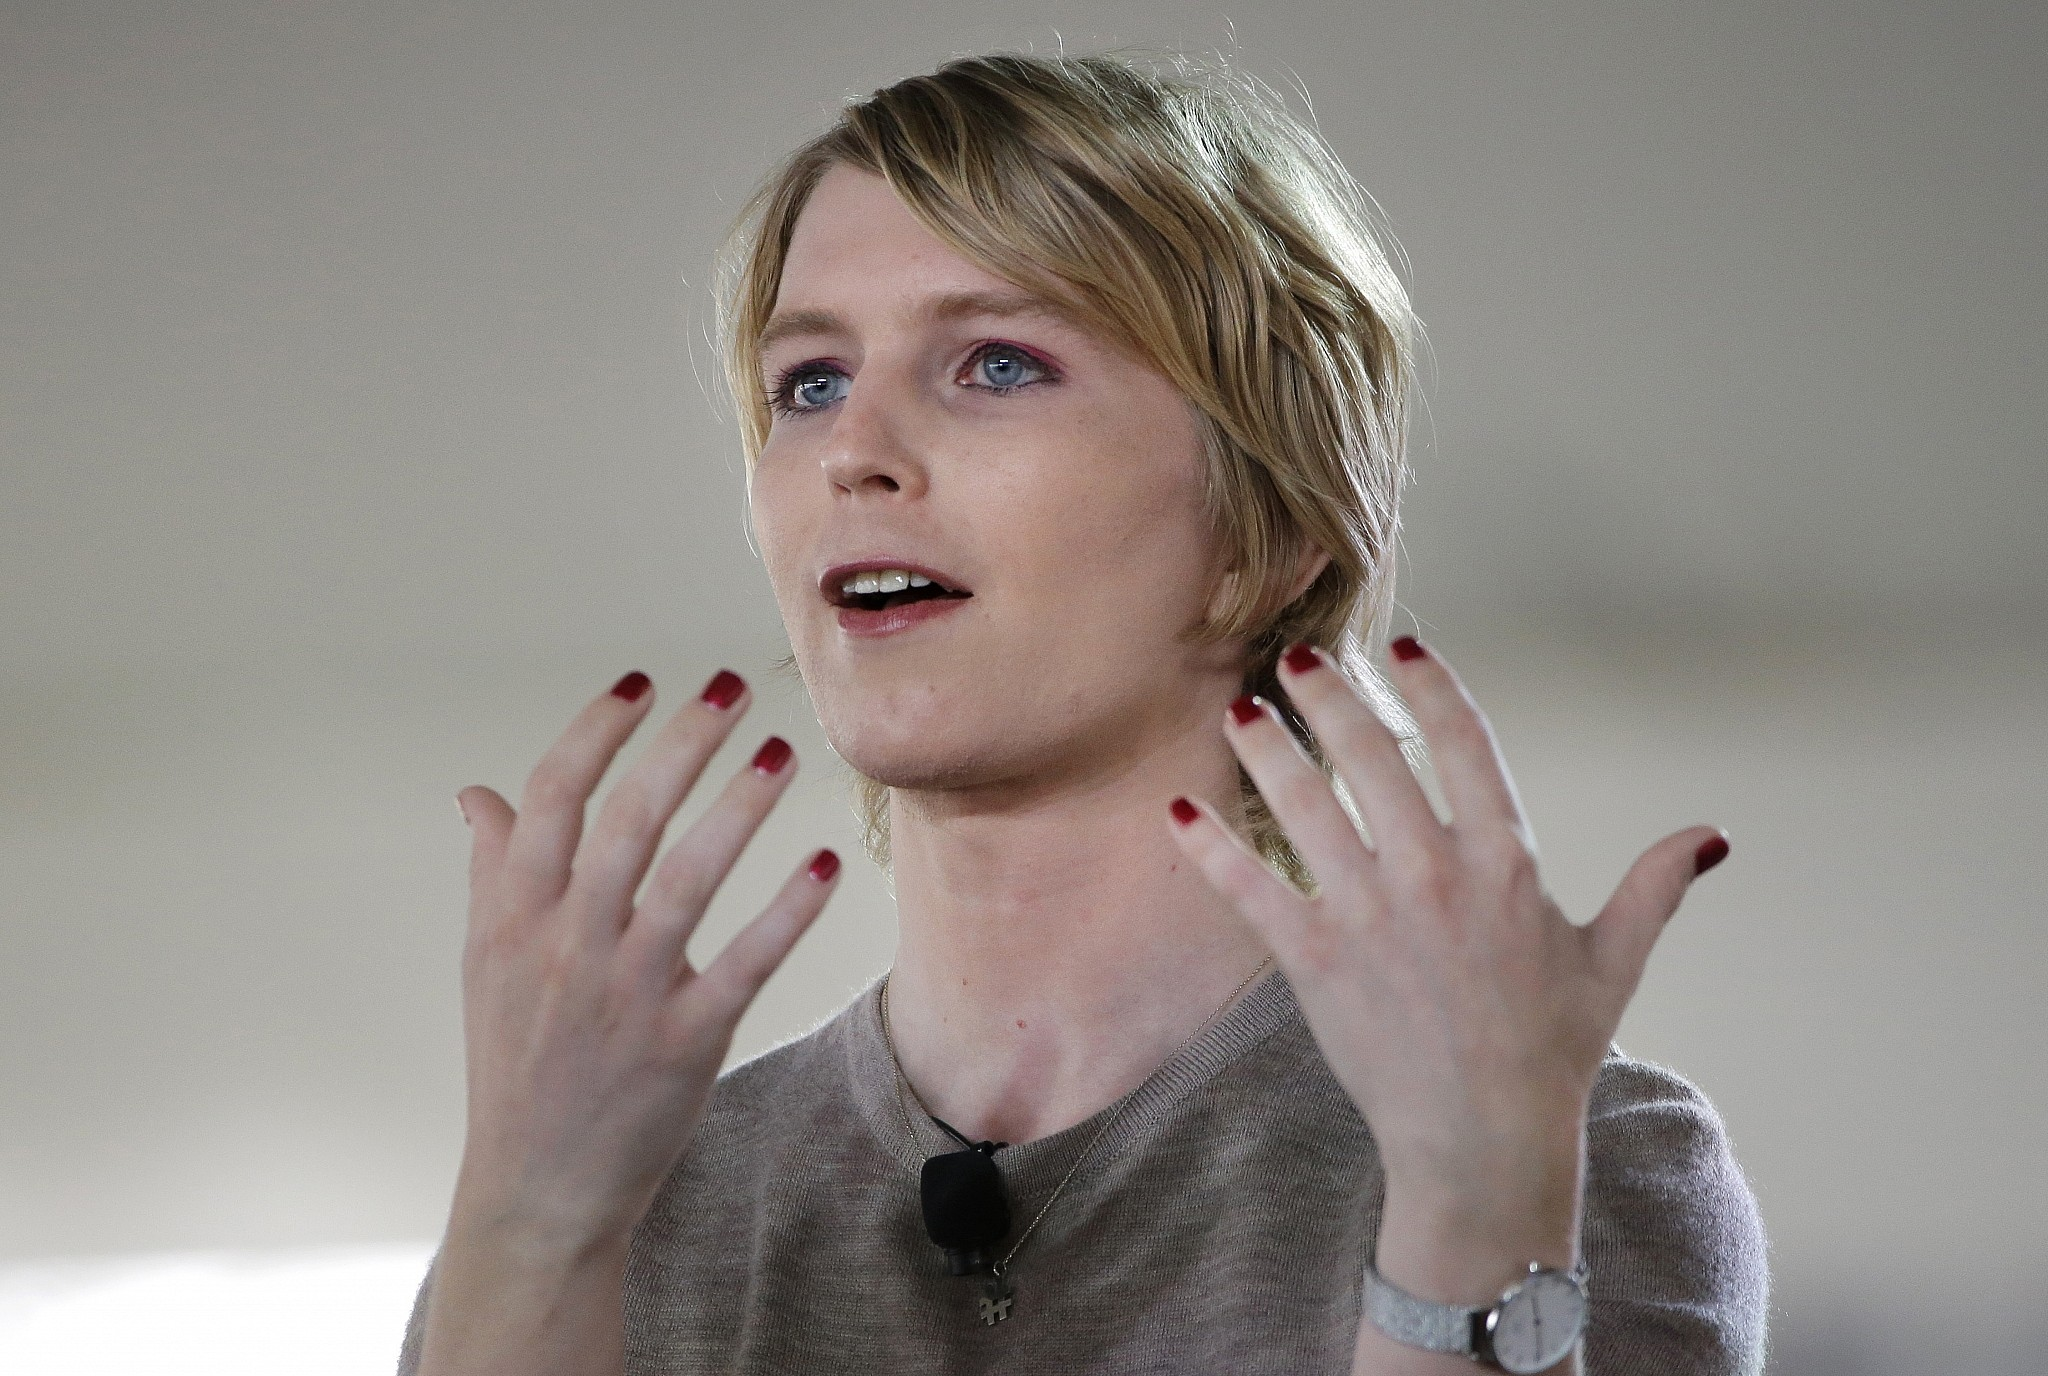 Chelsea Manning speaks during the Nantucket Project's annual gathering in Nantucket Massachusetts